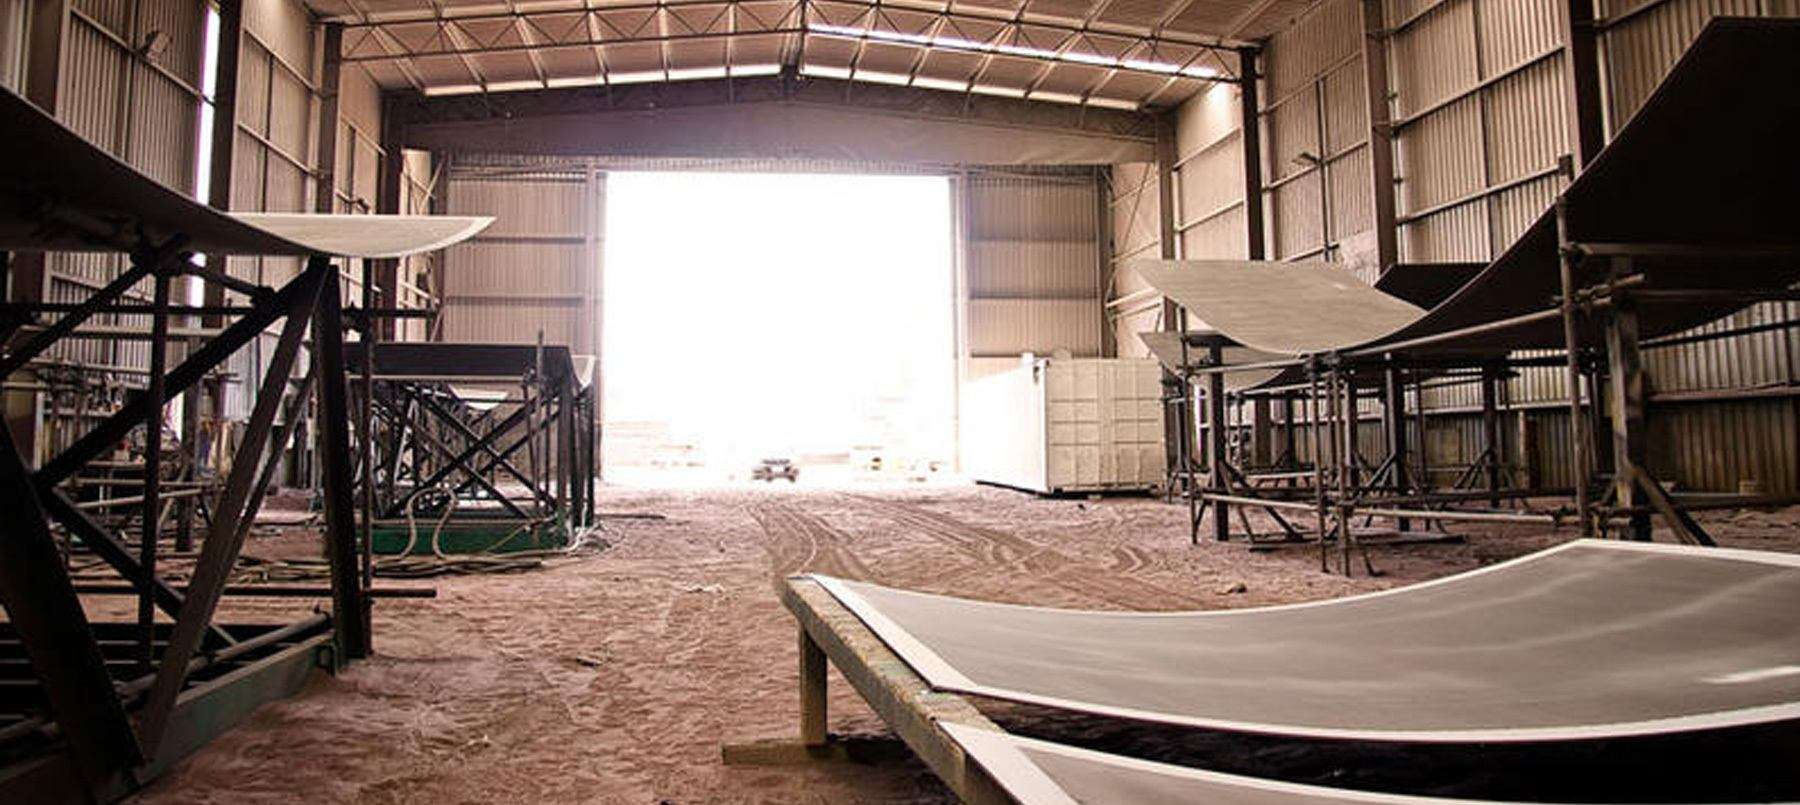 Abrasive blasting and industrial coating services